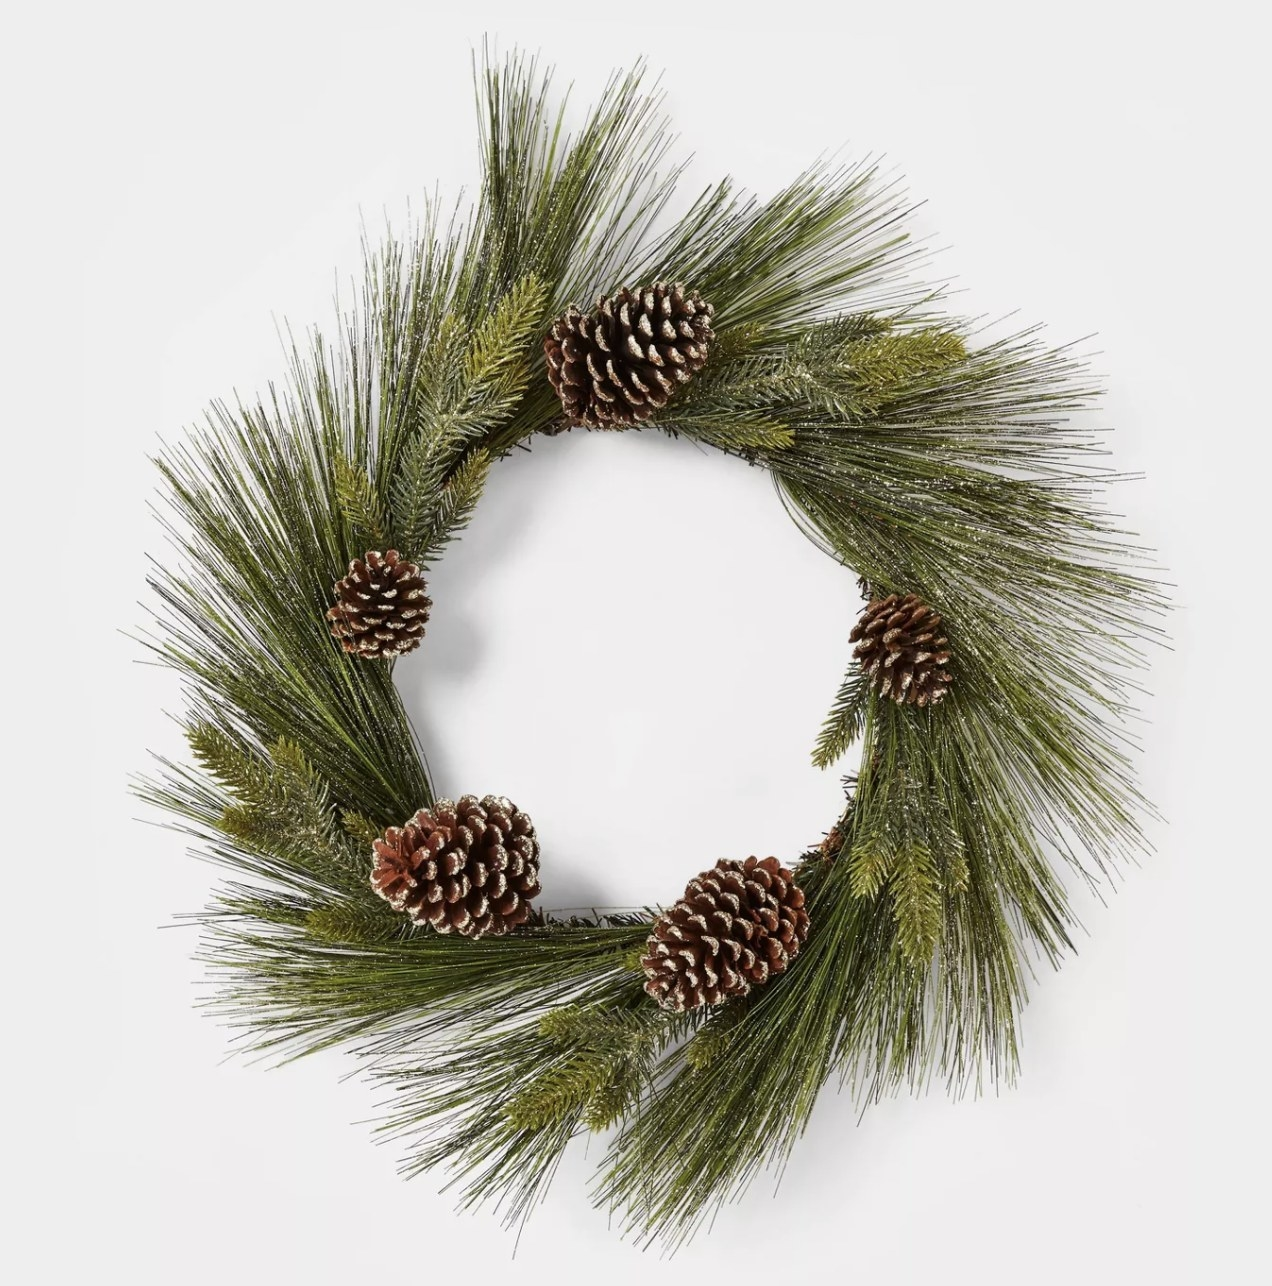 The pine wreath with pinecones